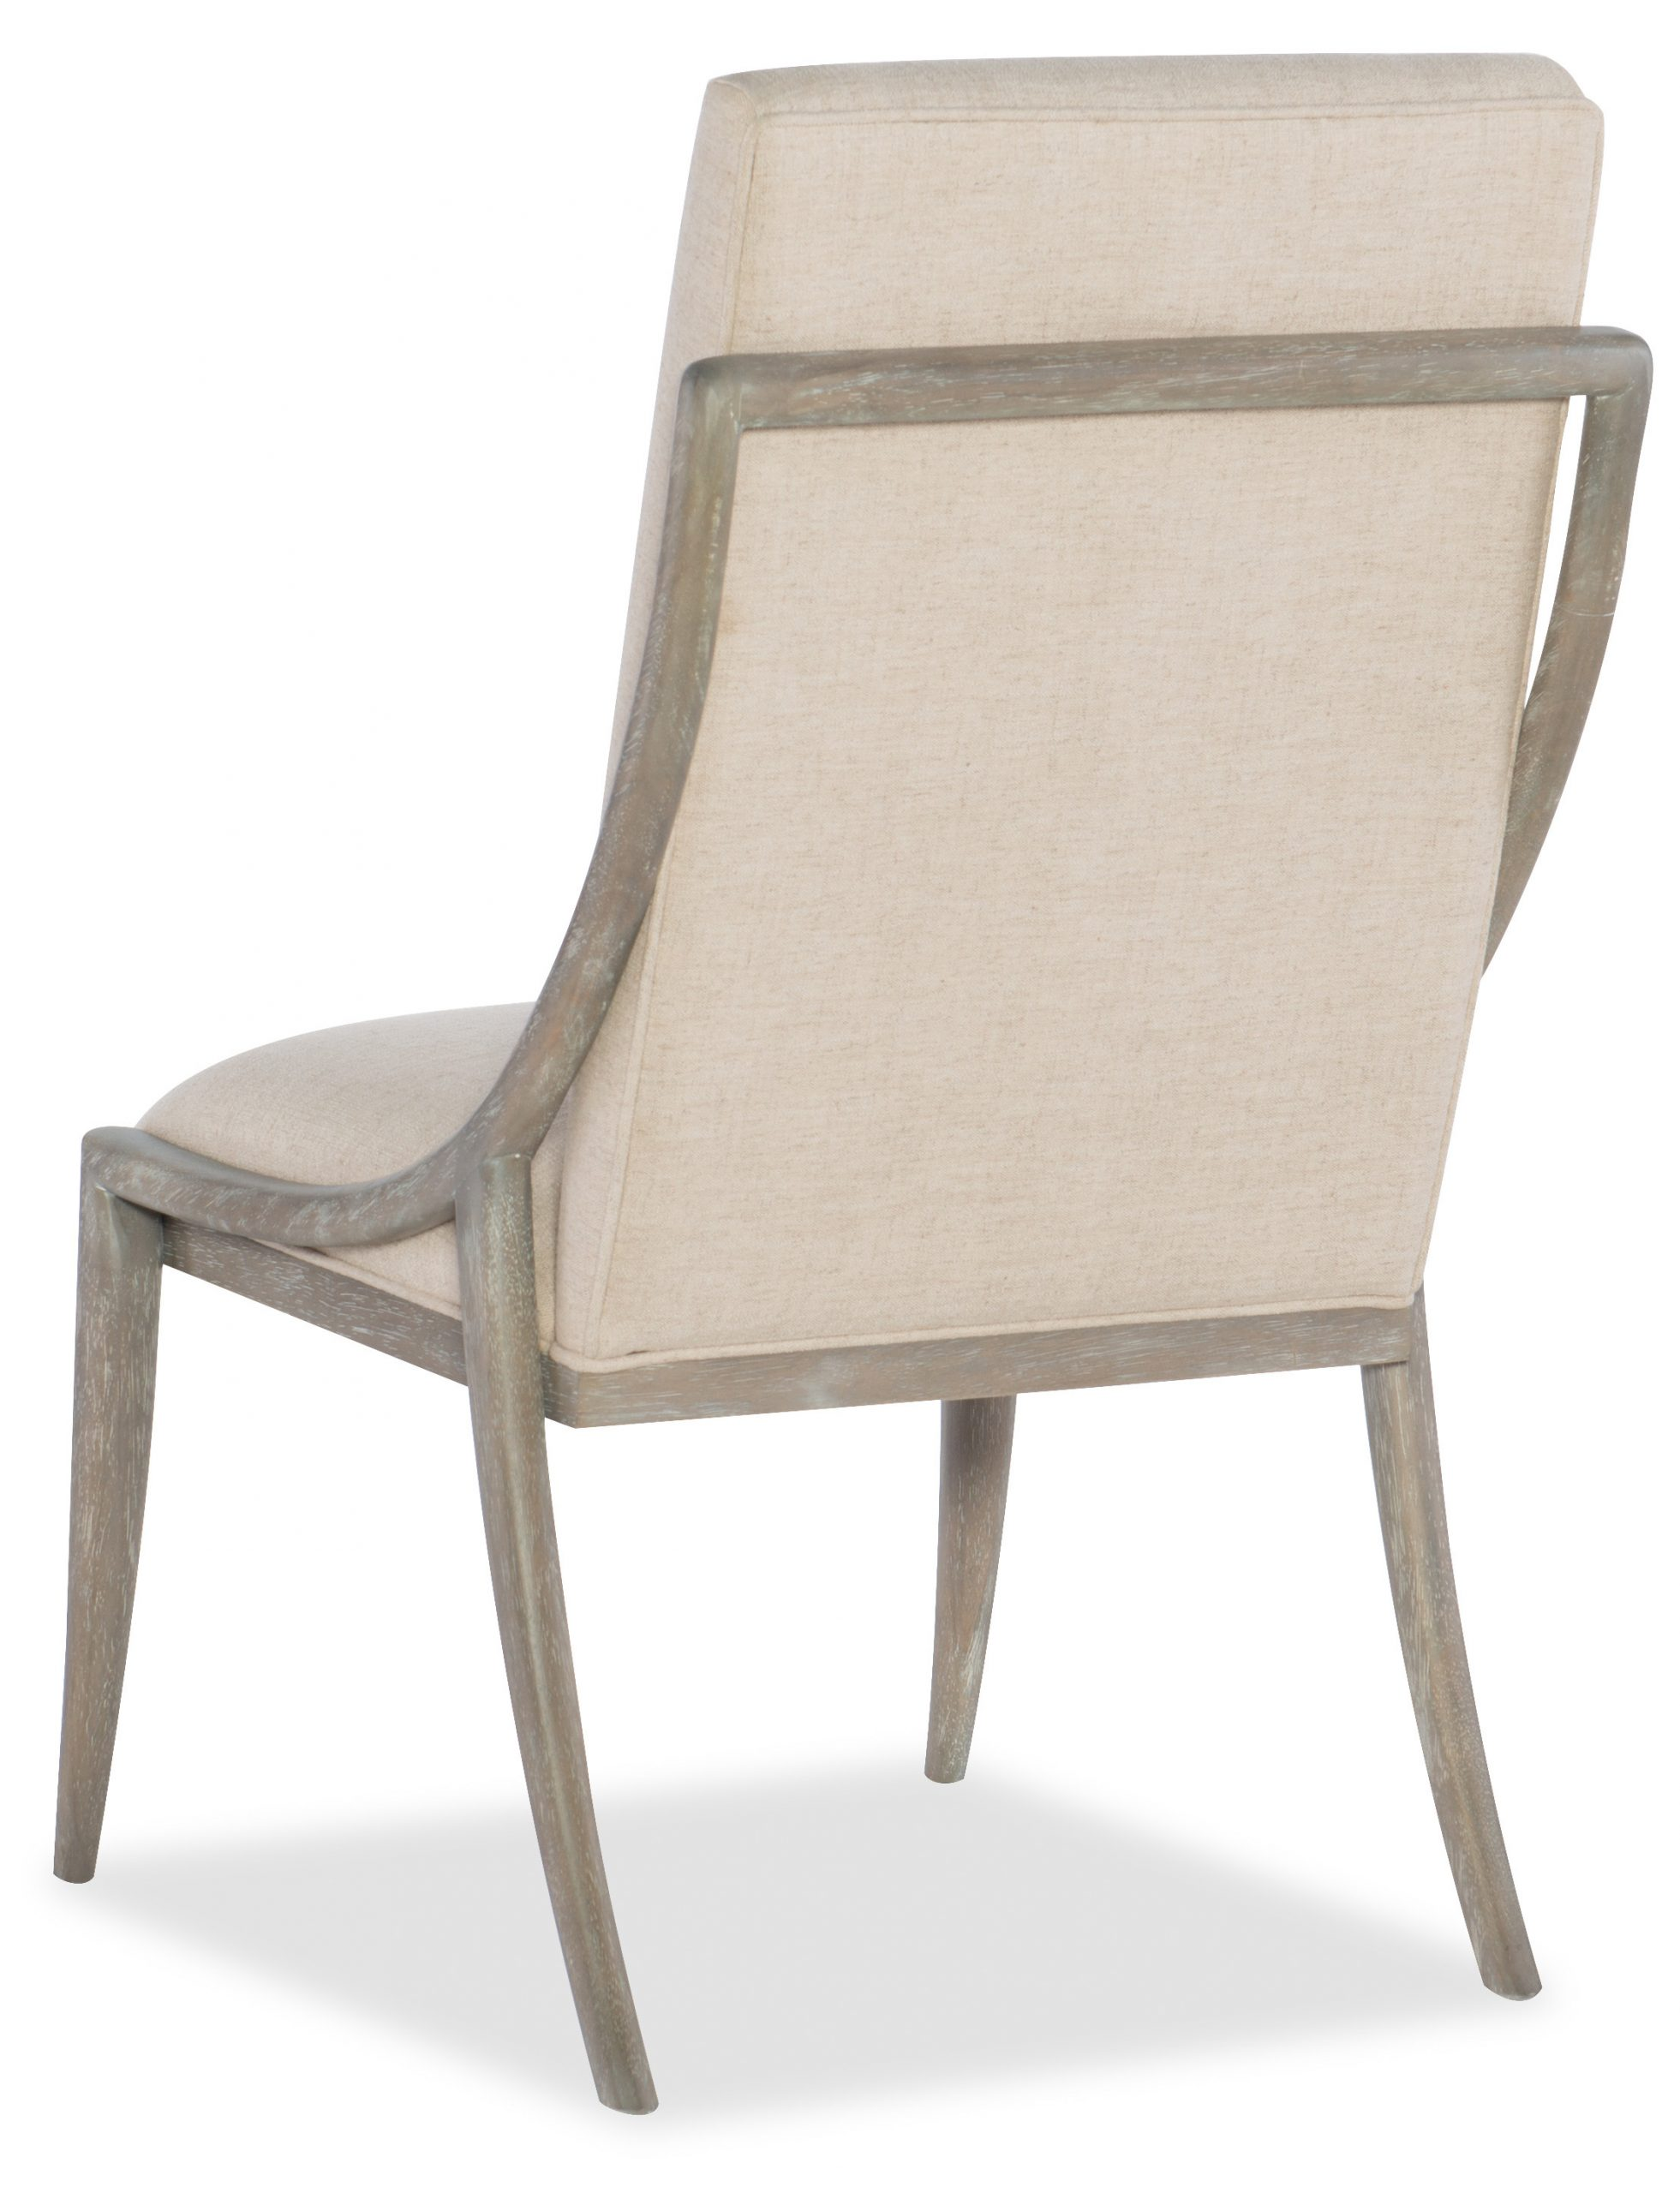 Affinity Slope Side Chair - 2 per carton/price ea